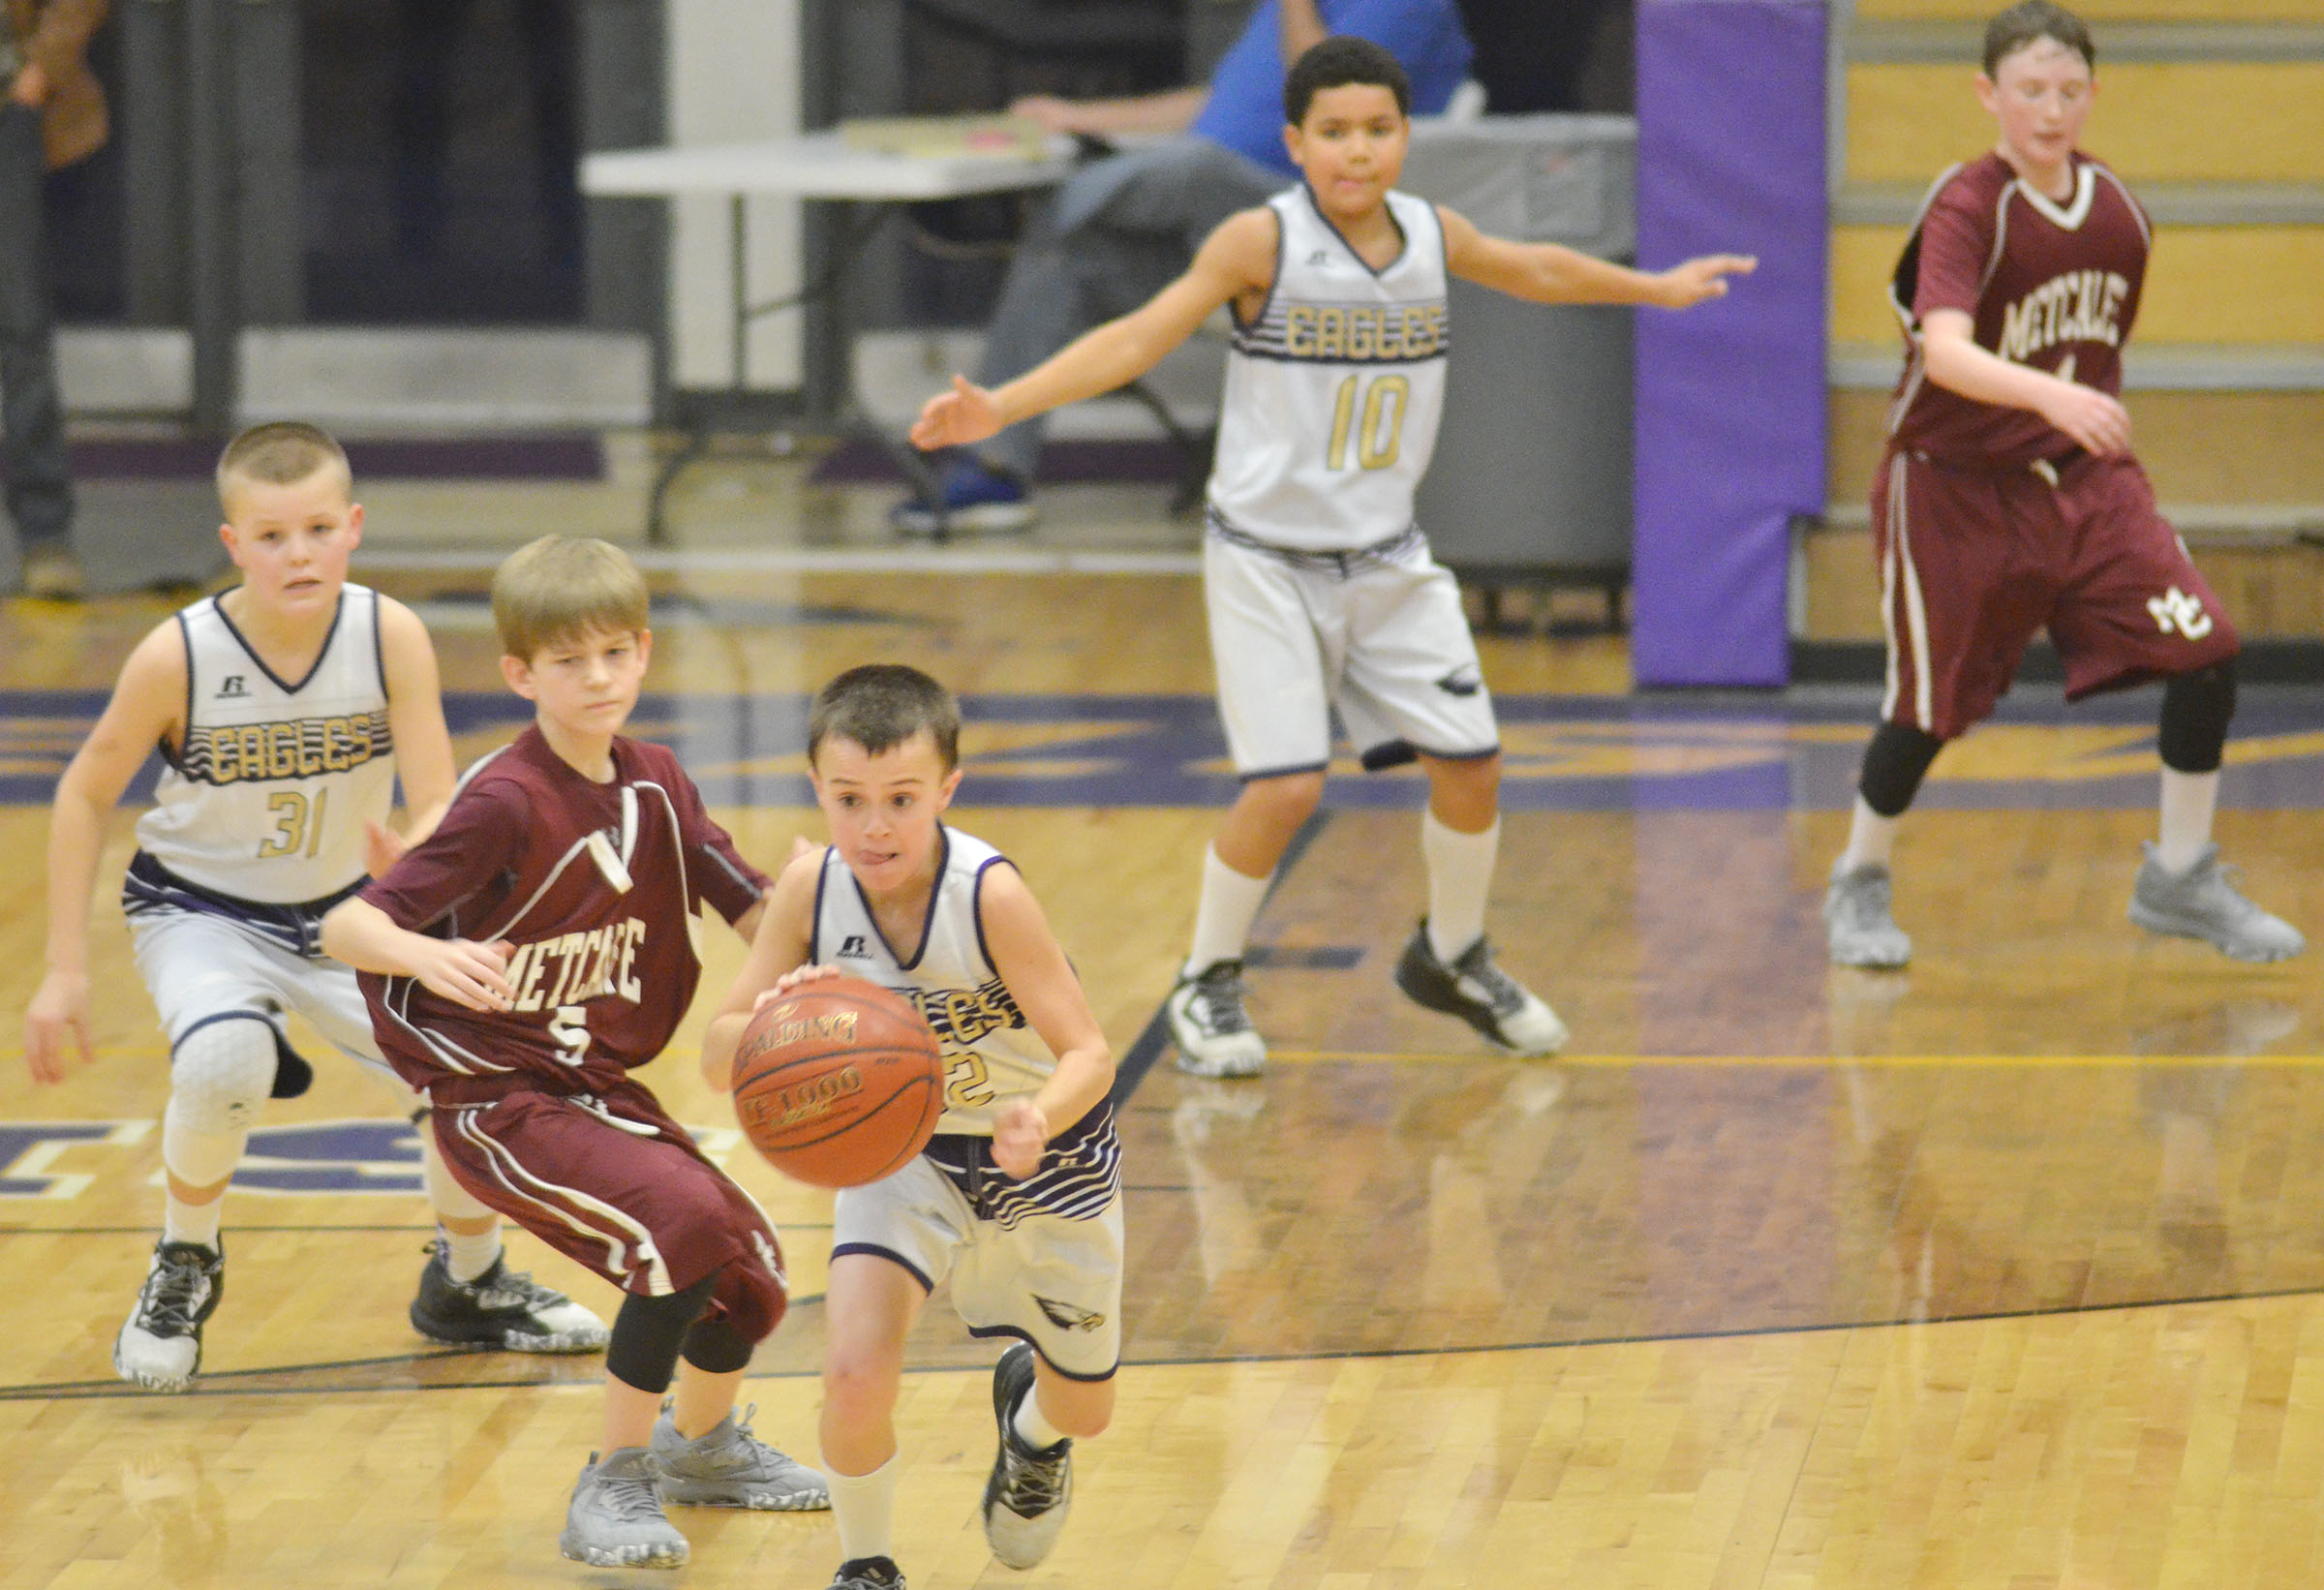 CMS sixth-grader Chase Hord steals the ball.